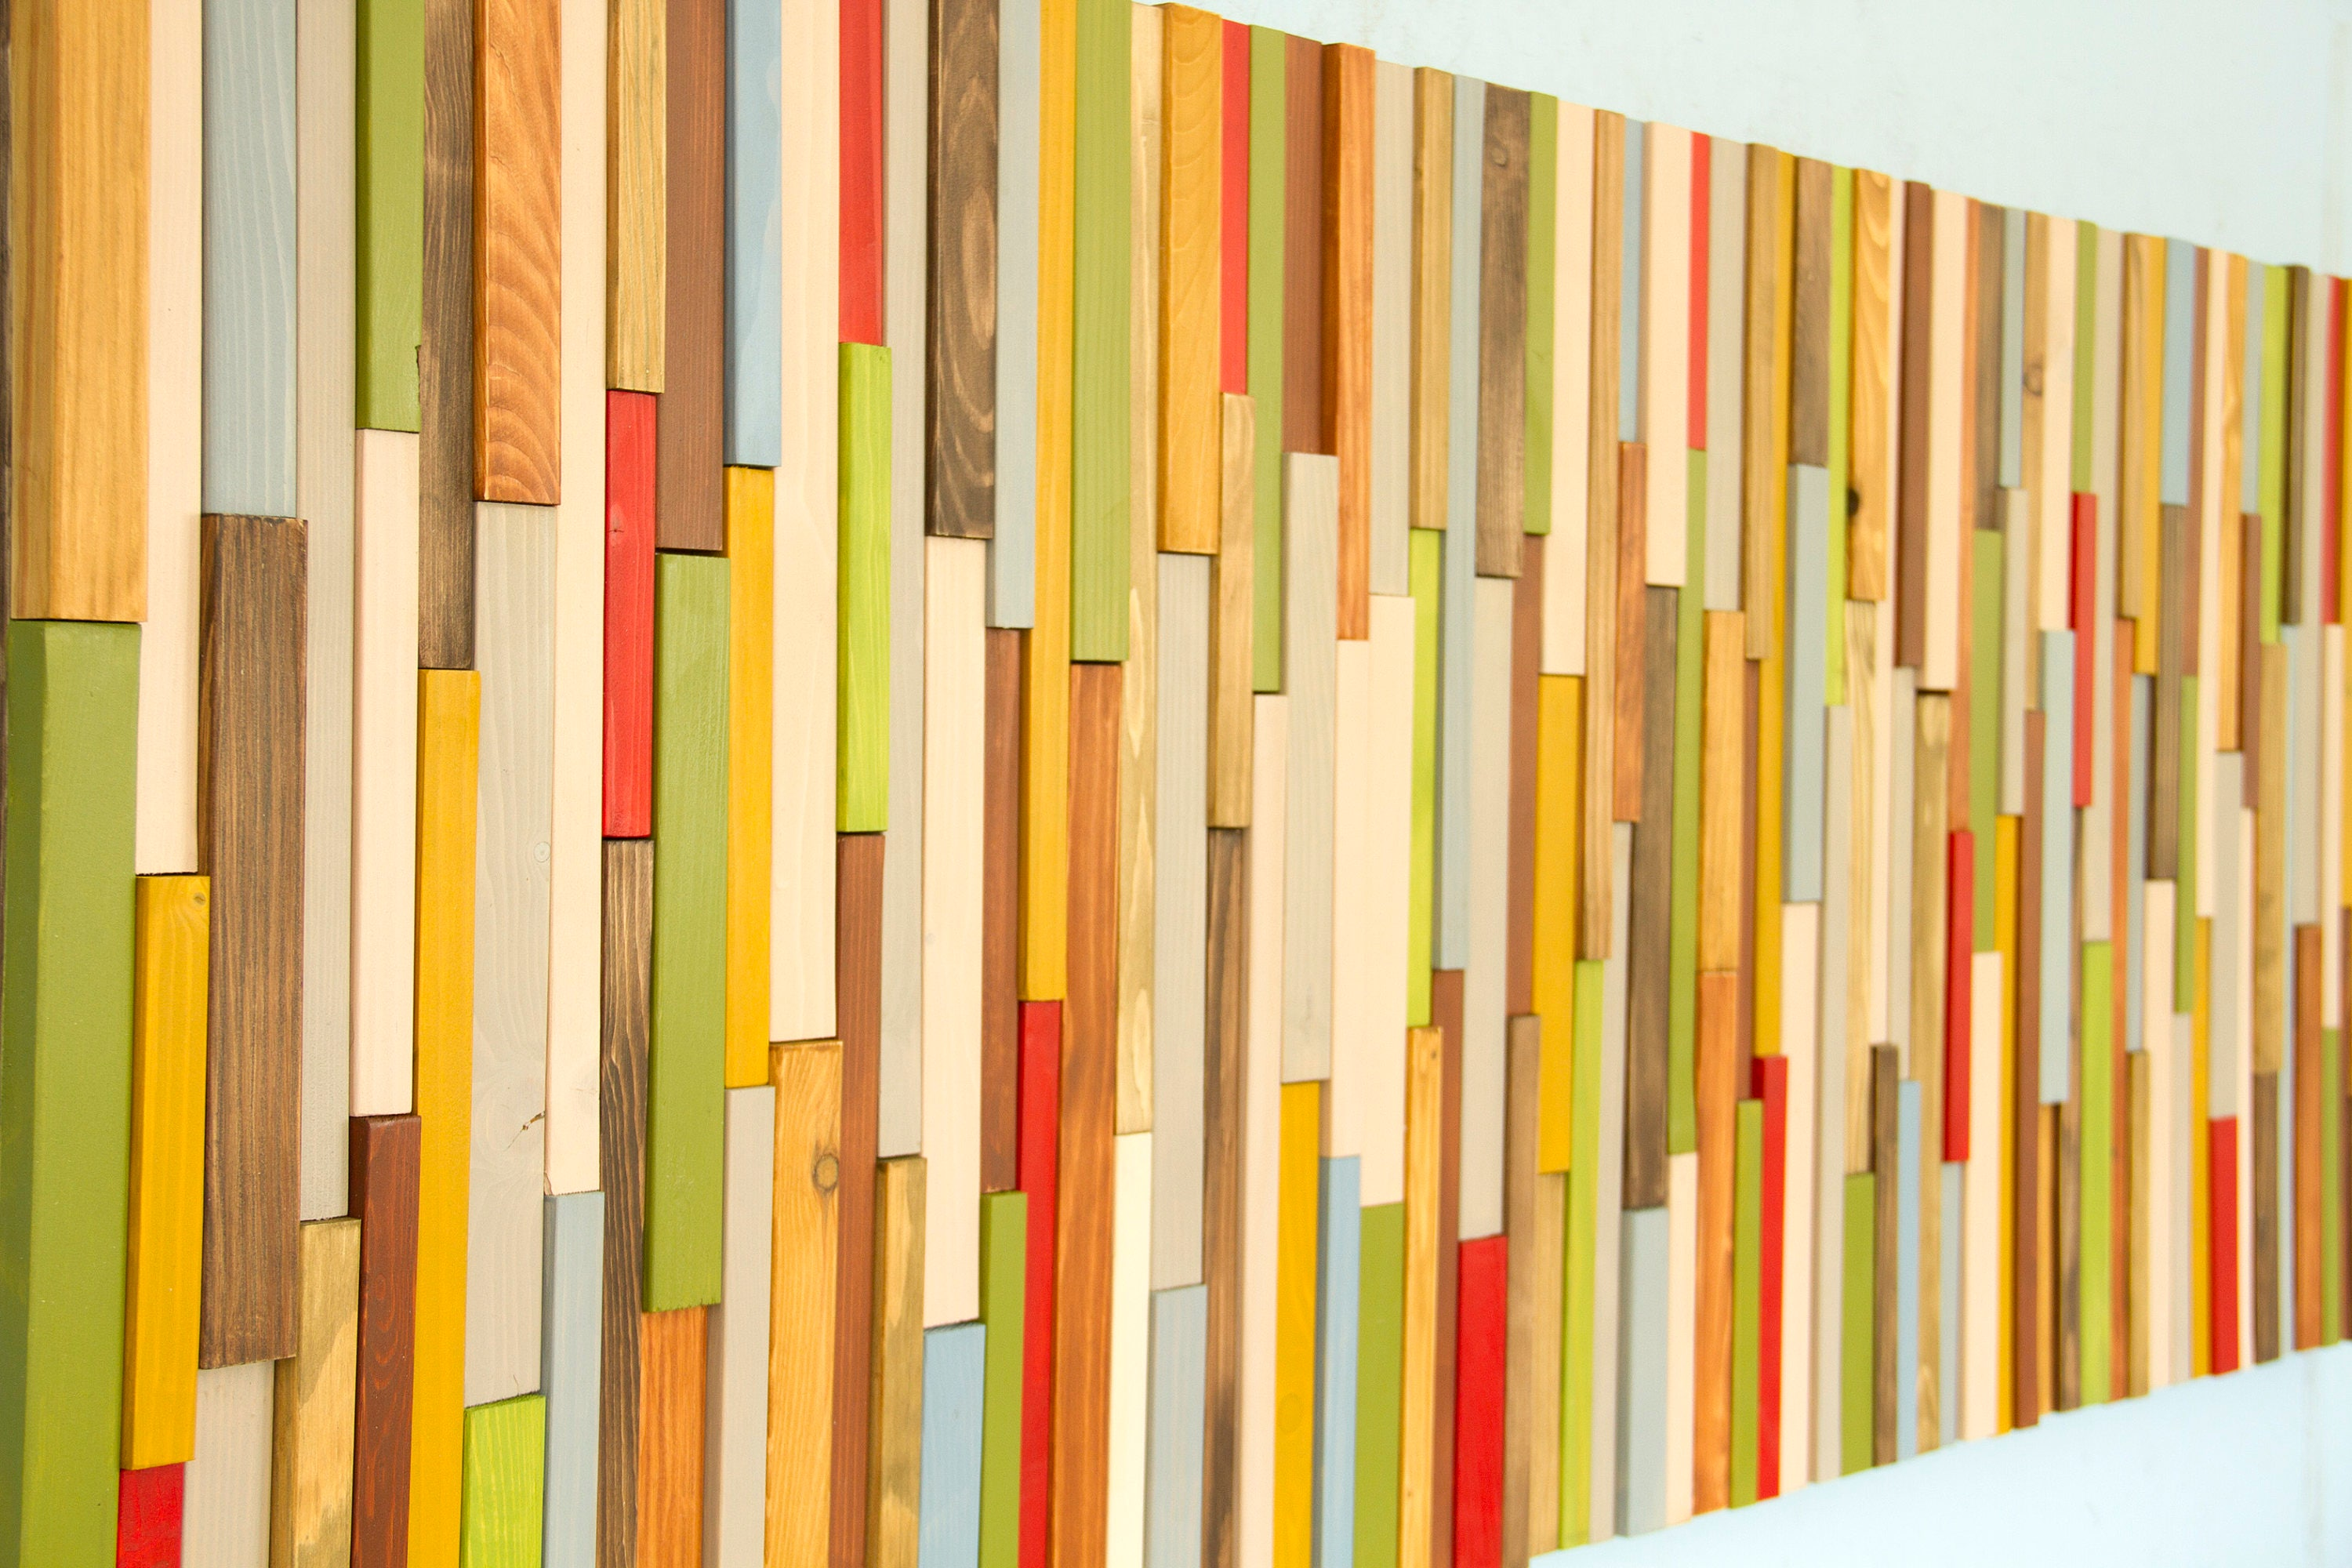 Wood Wall Art 3D, wood sculpture, 24 x 64, painted wood pieces ...